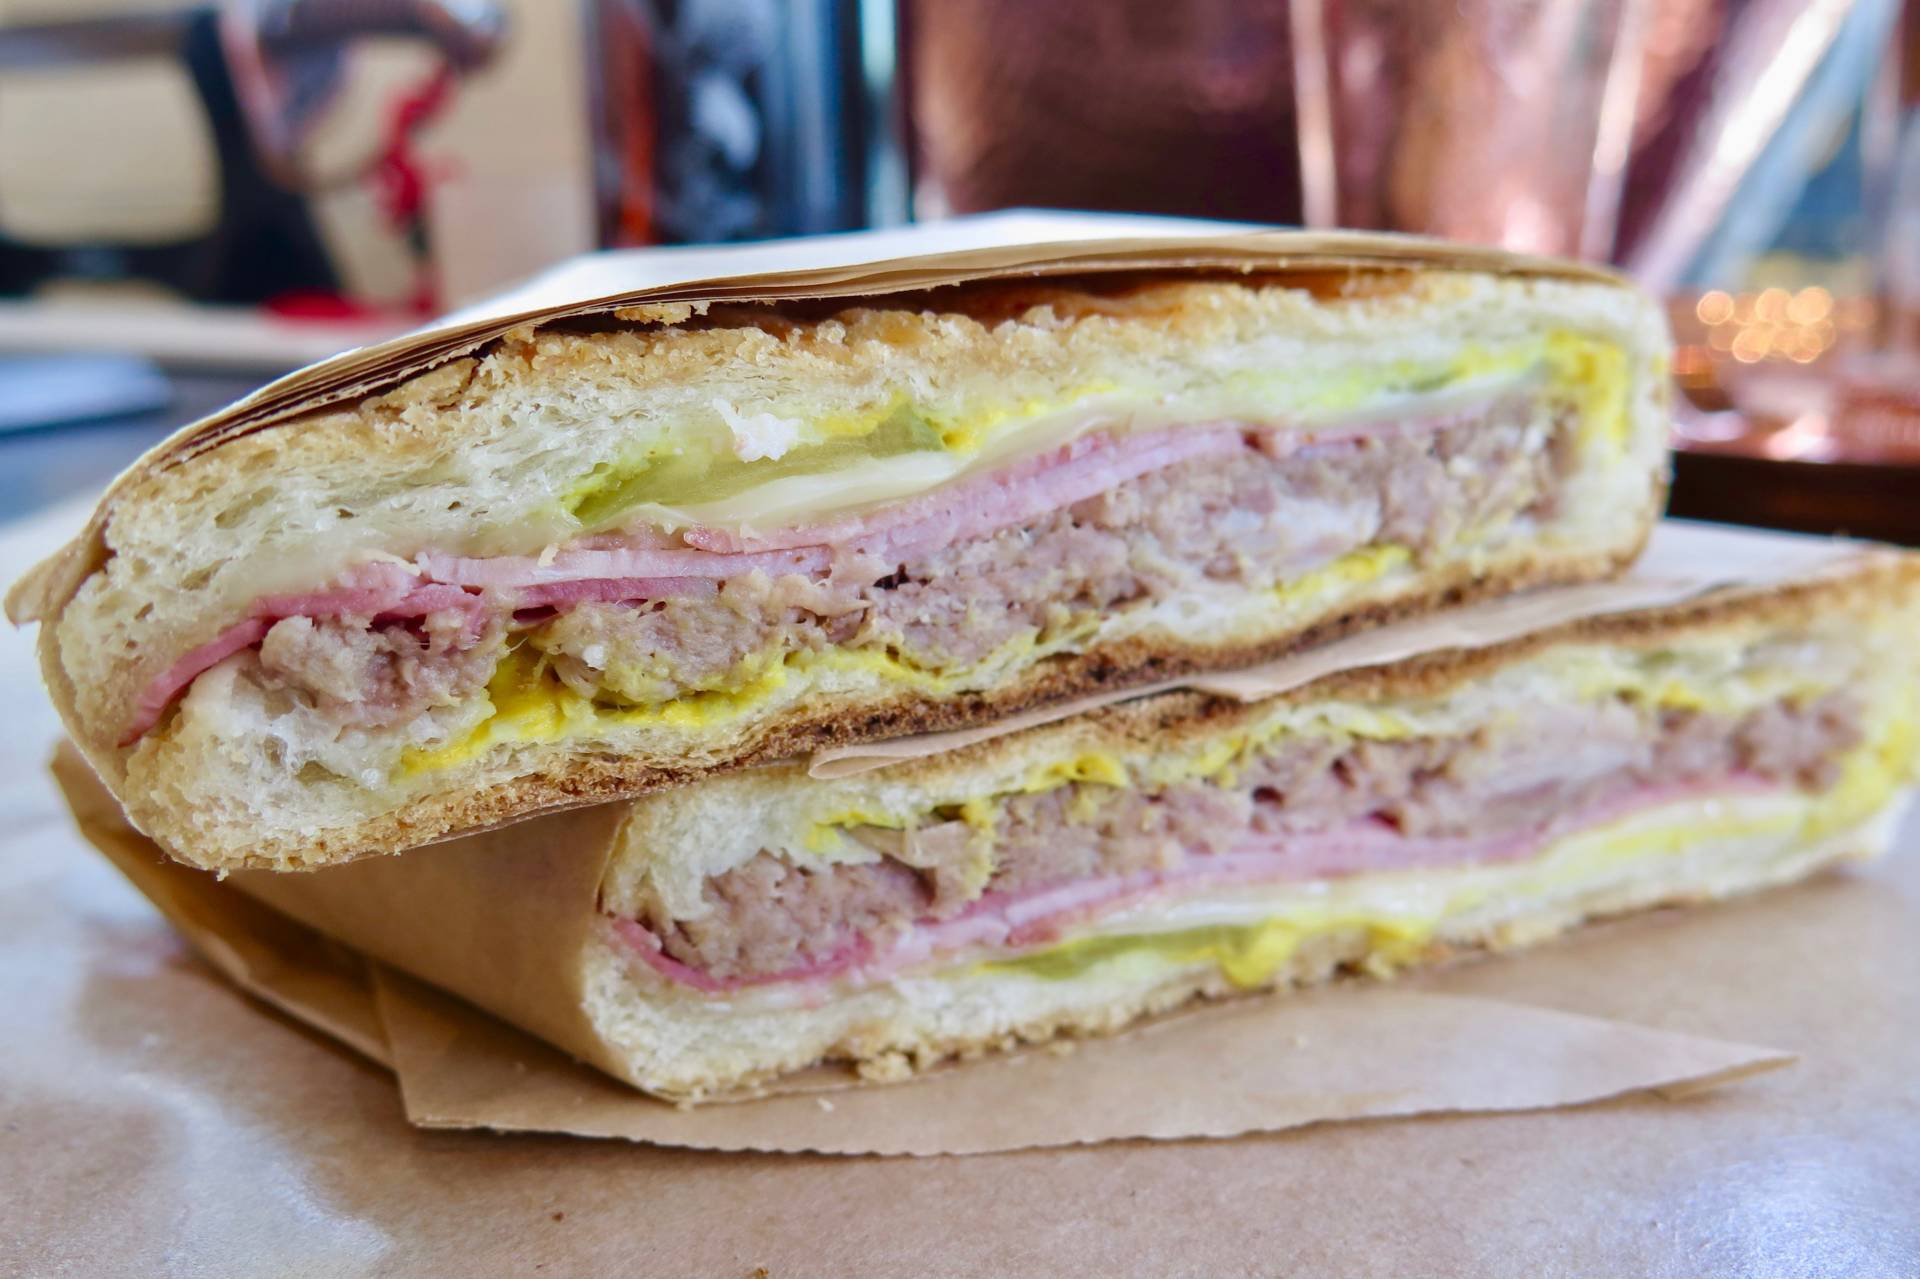 Find a tasty Cubano at Avedano's Deli at Maison Corbeaux.